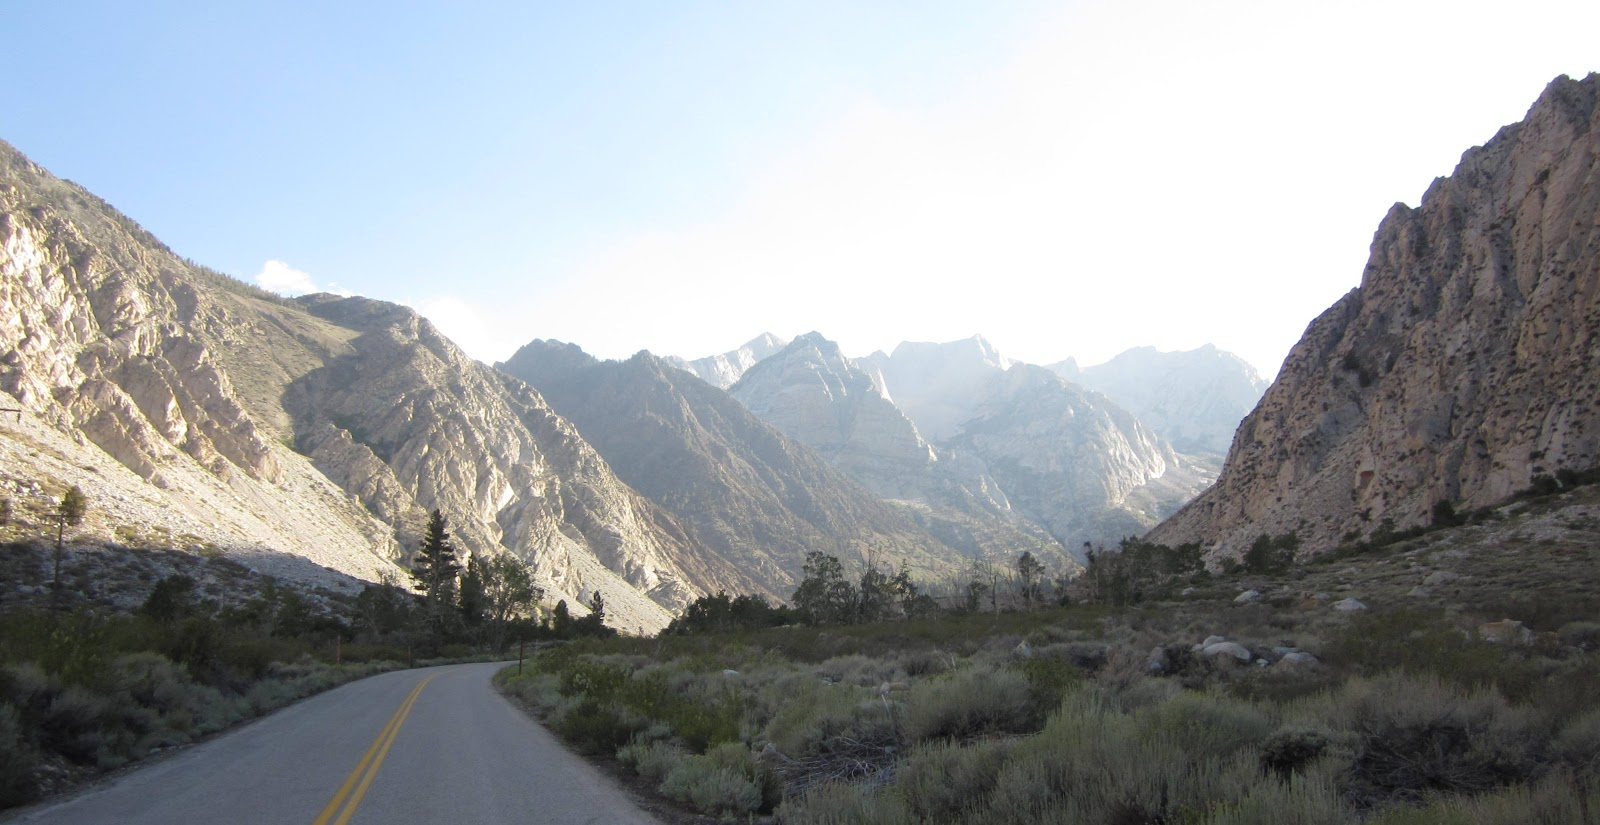 Climbing Pine Creek Road - Owens Valley by bike - view of canyon